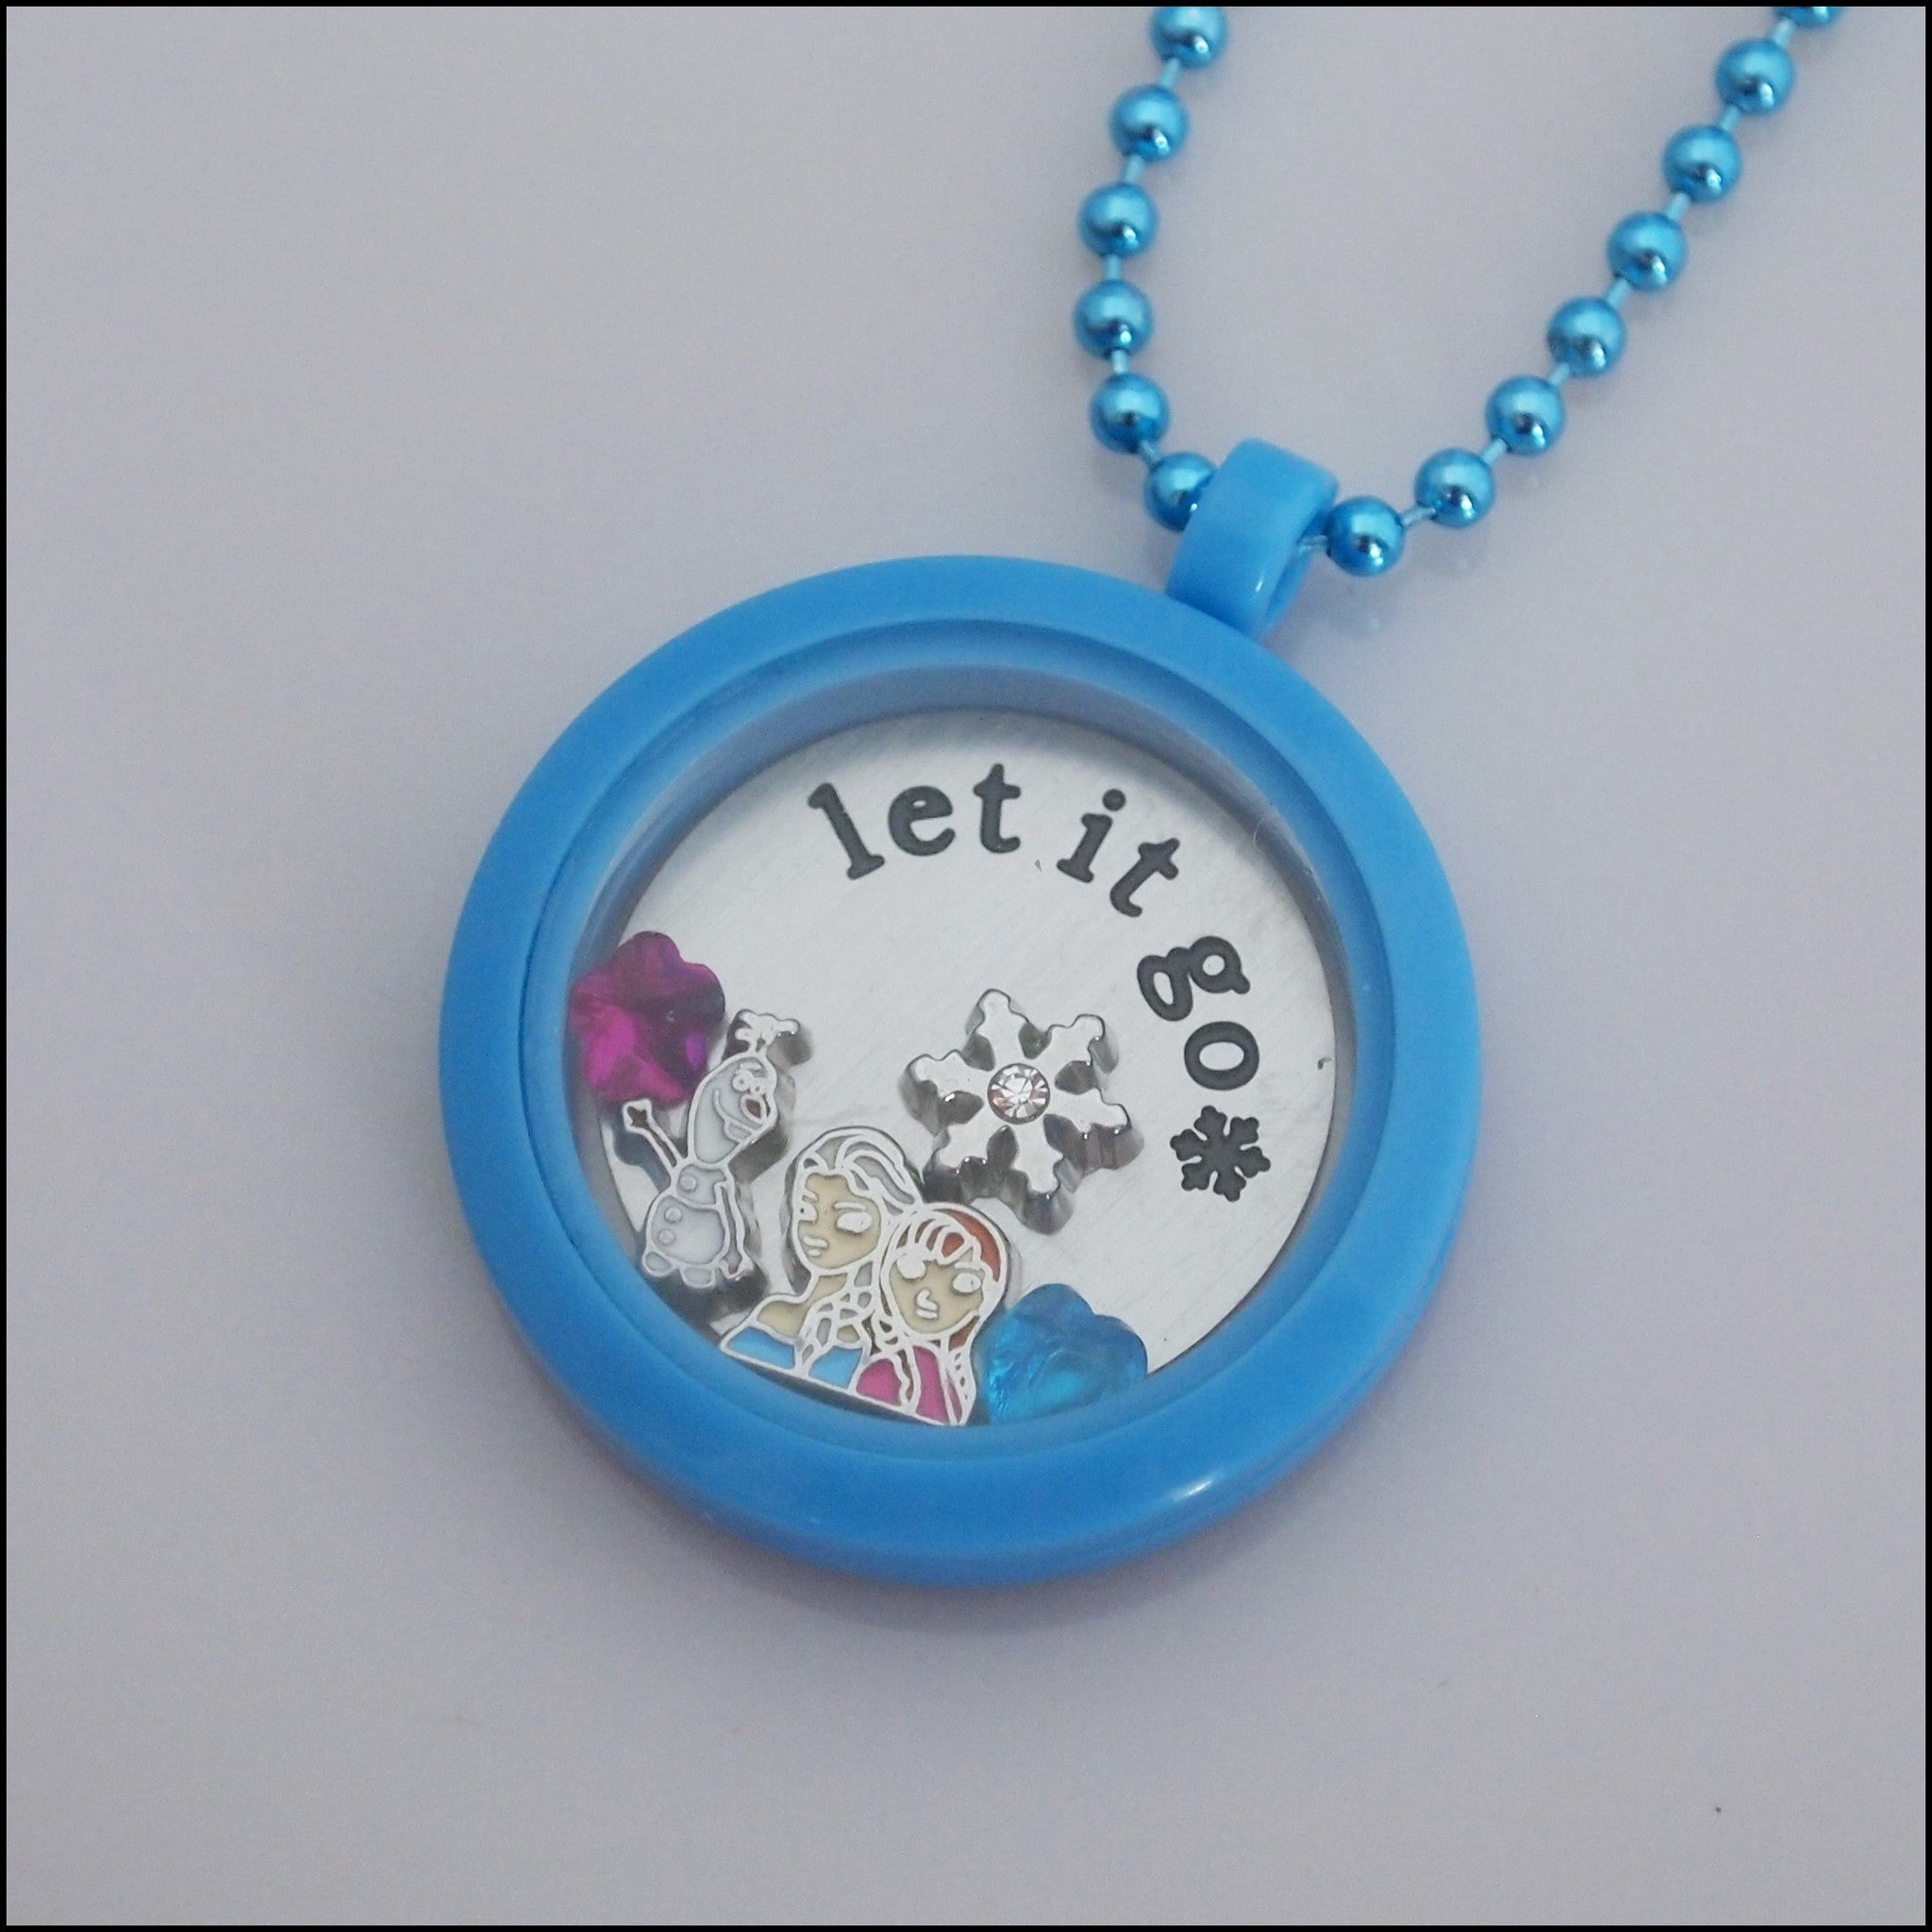 Acrylic Magnetic Living Locket - Special Edition Frozen Theme - Find Something Special